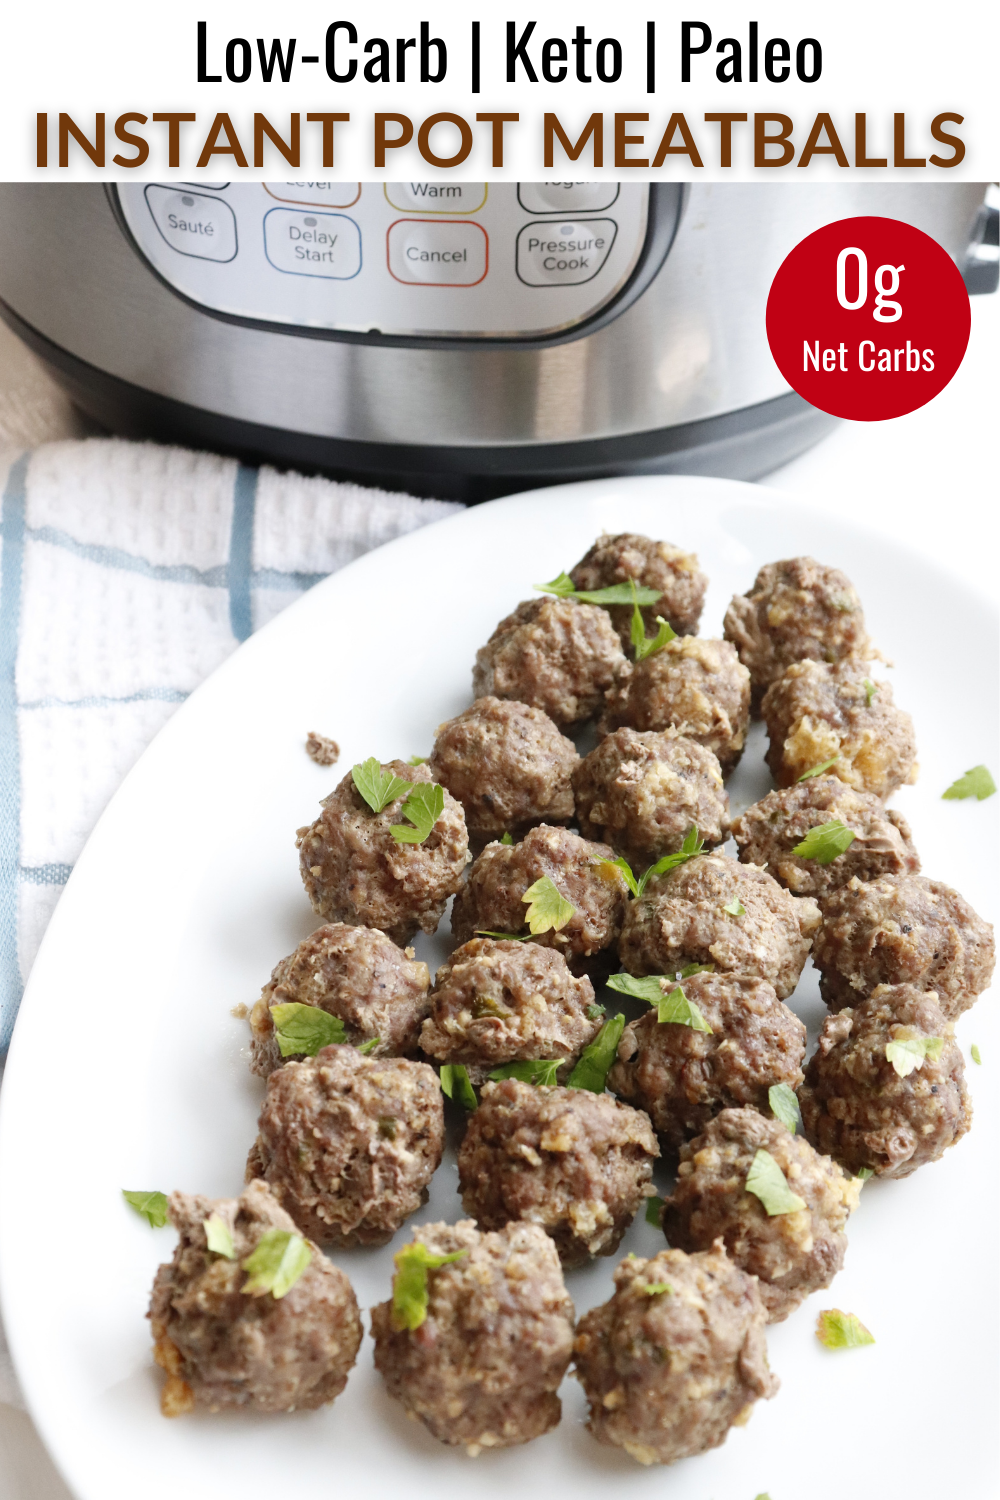 Instant Pot Meatballs In 2020 Ground Beef Paleo Recipes Low Carb Instant Pot Recipes Beef Recipes